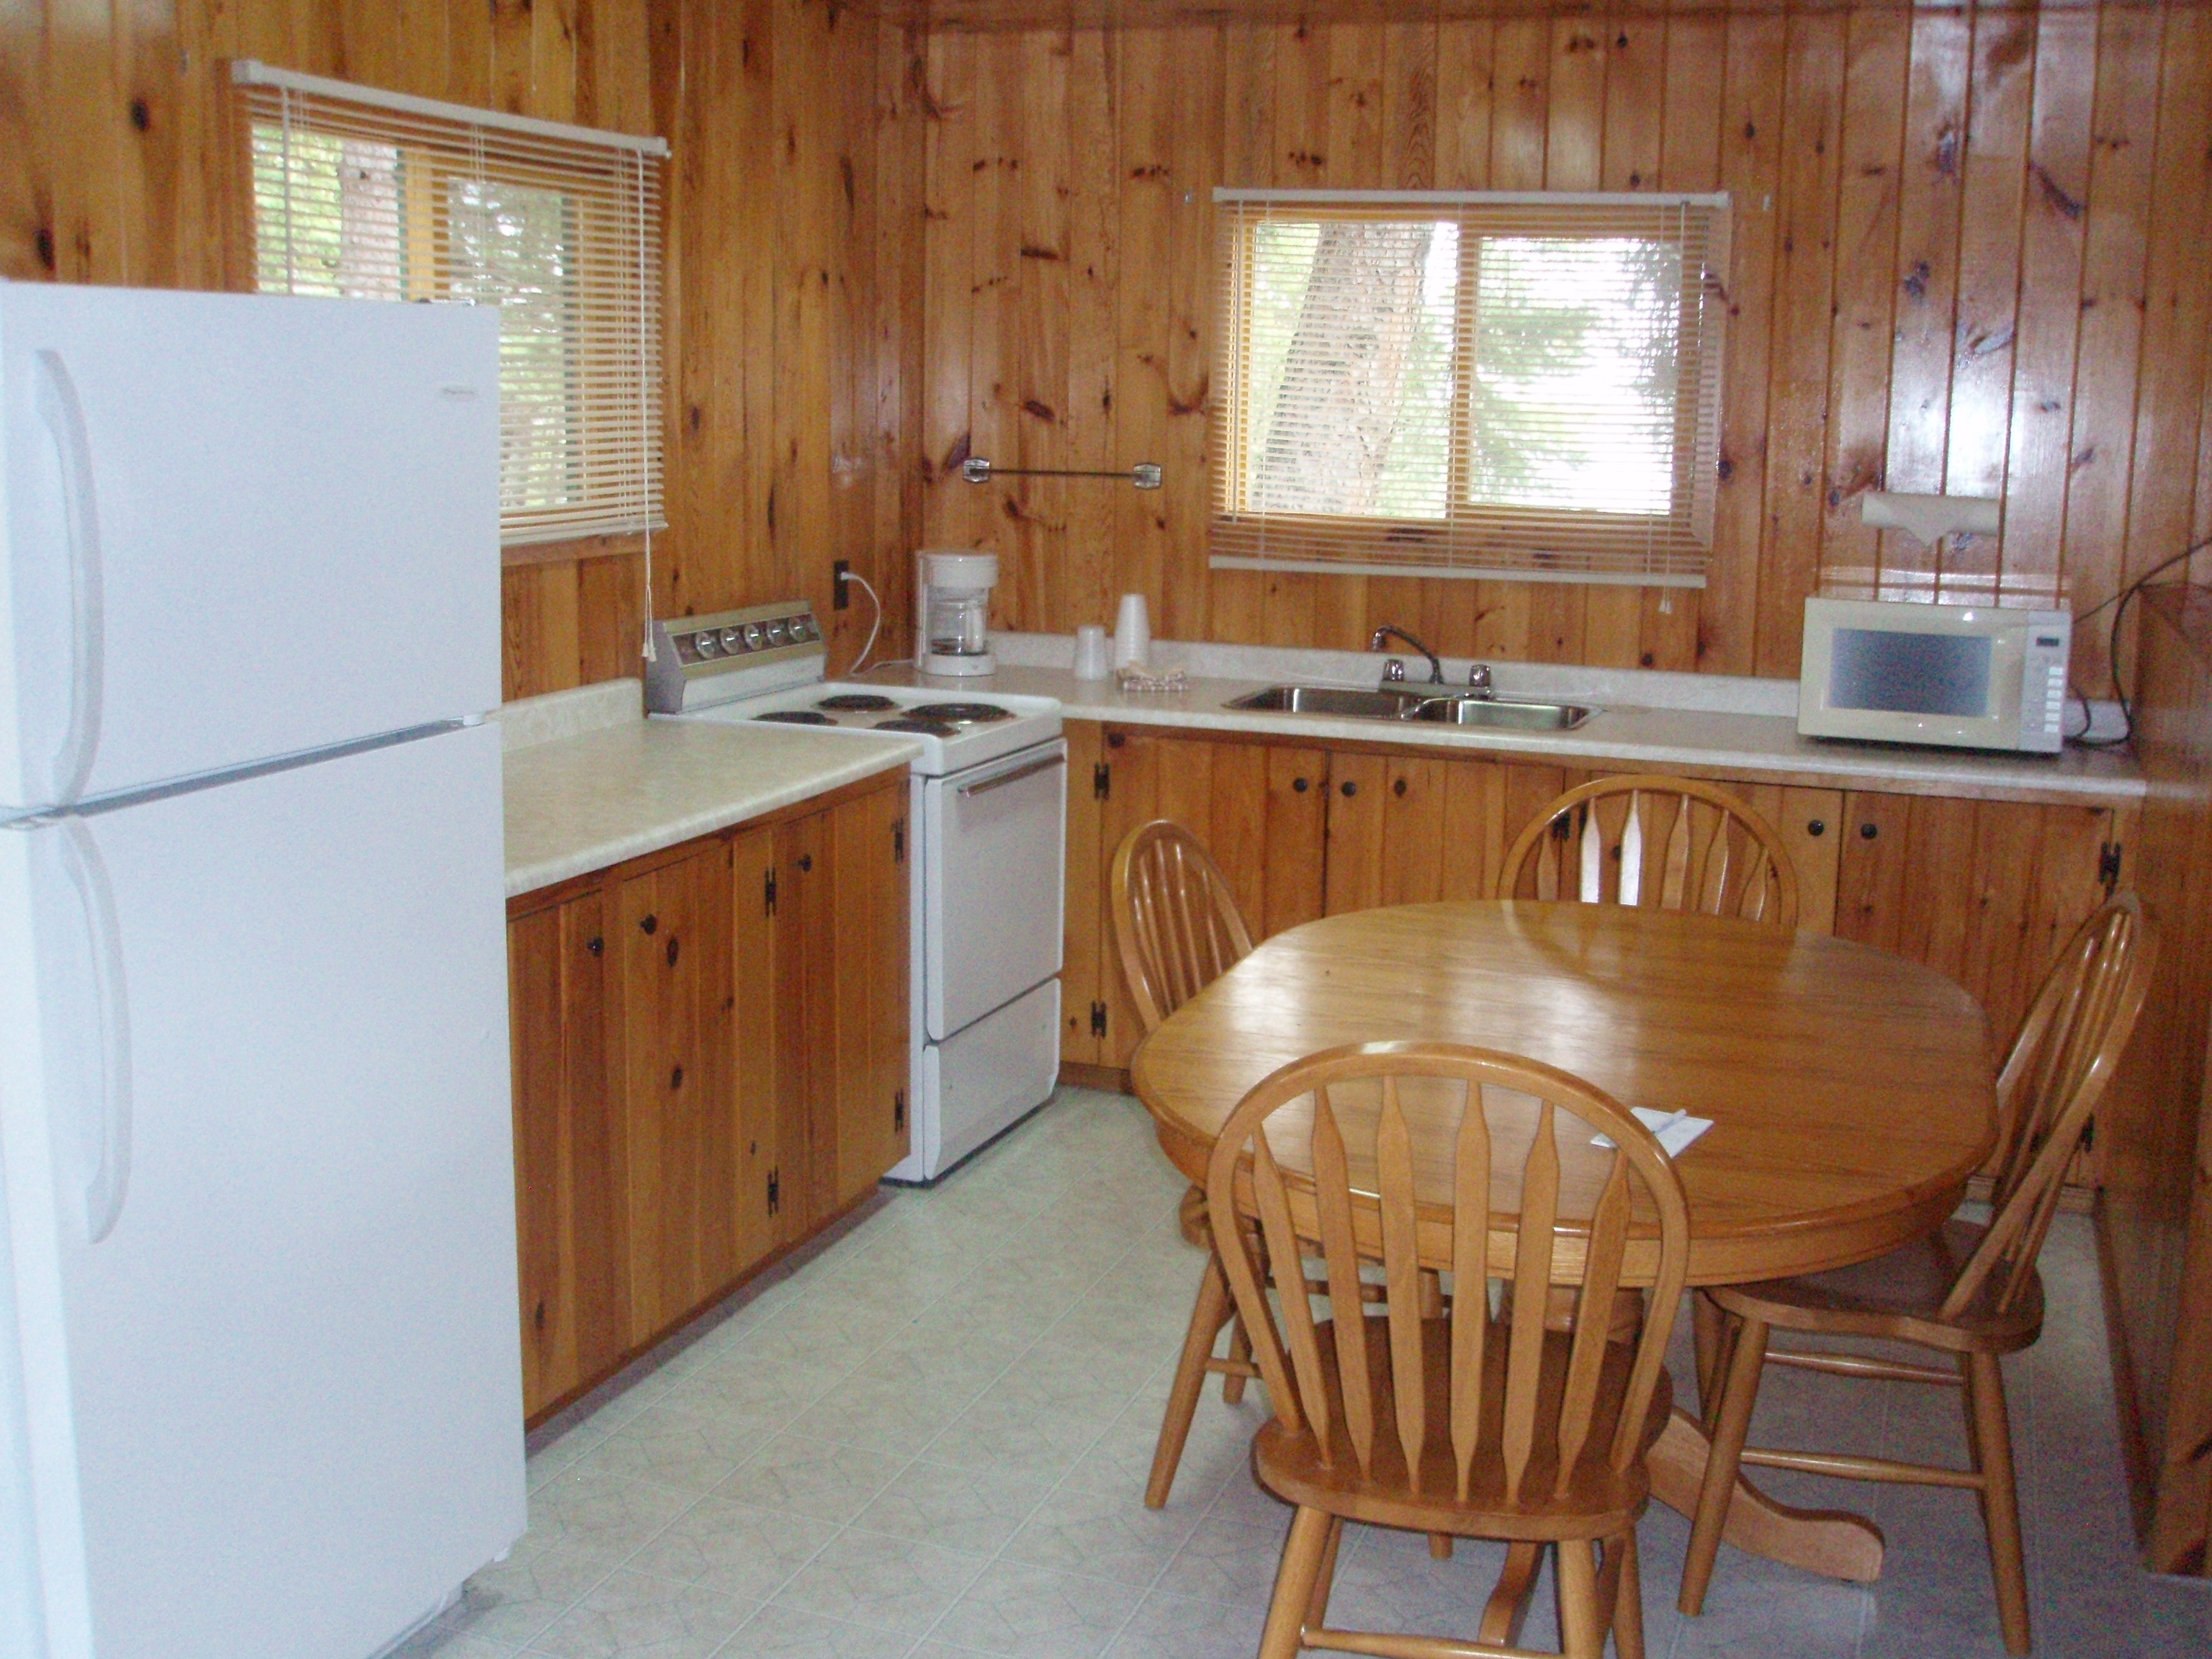 kitchen with table and chairs inside one of the cabins